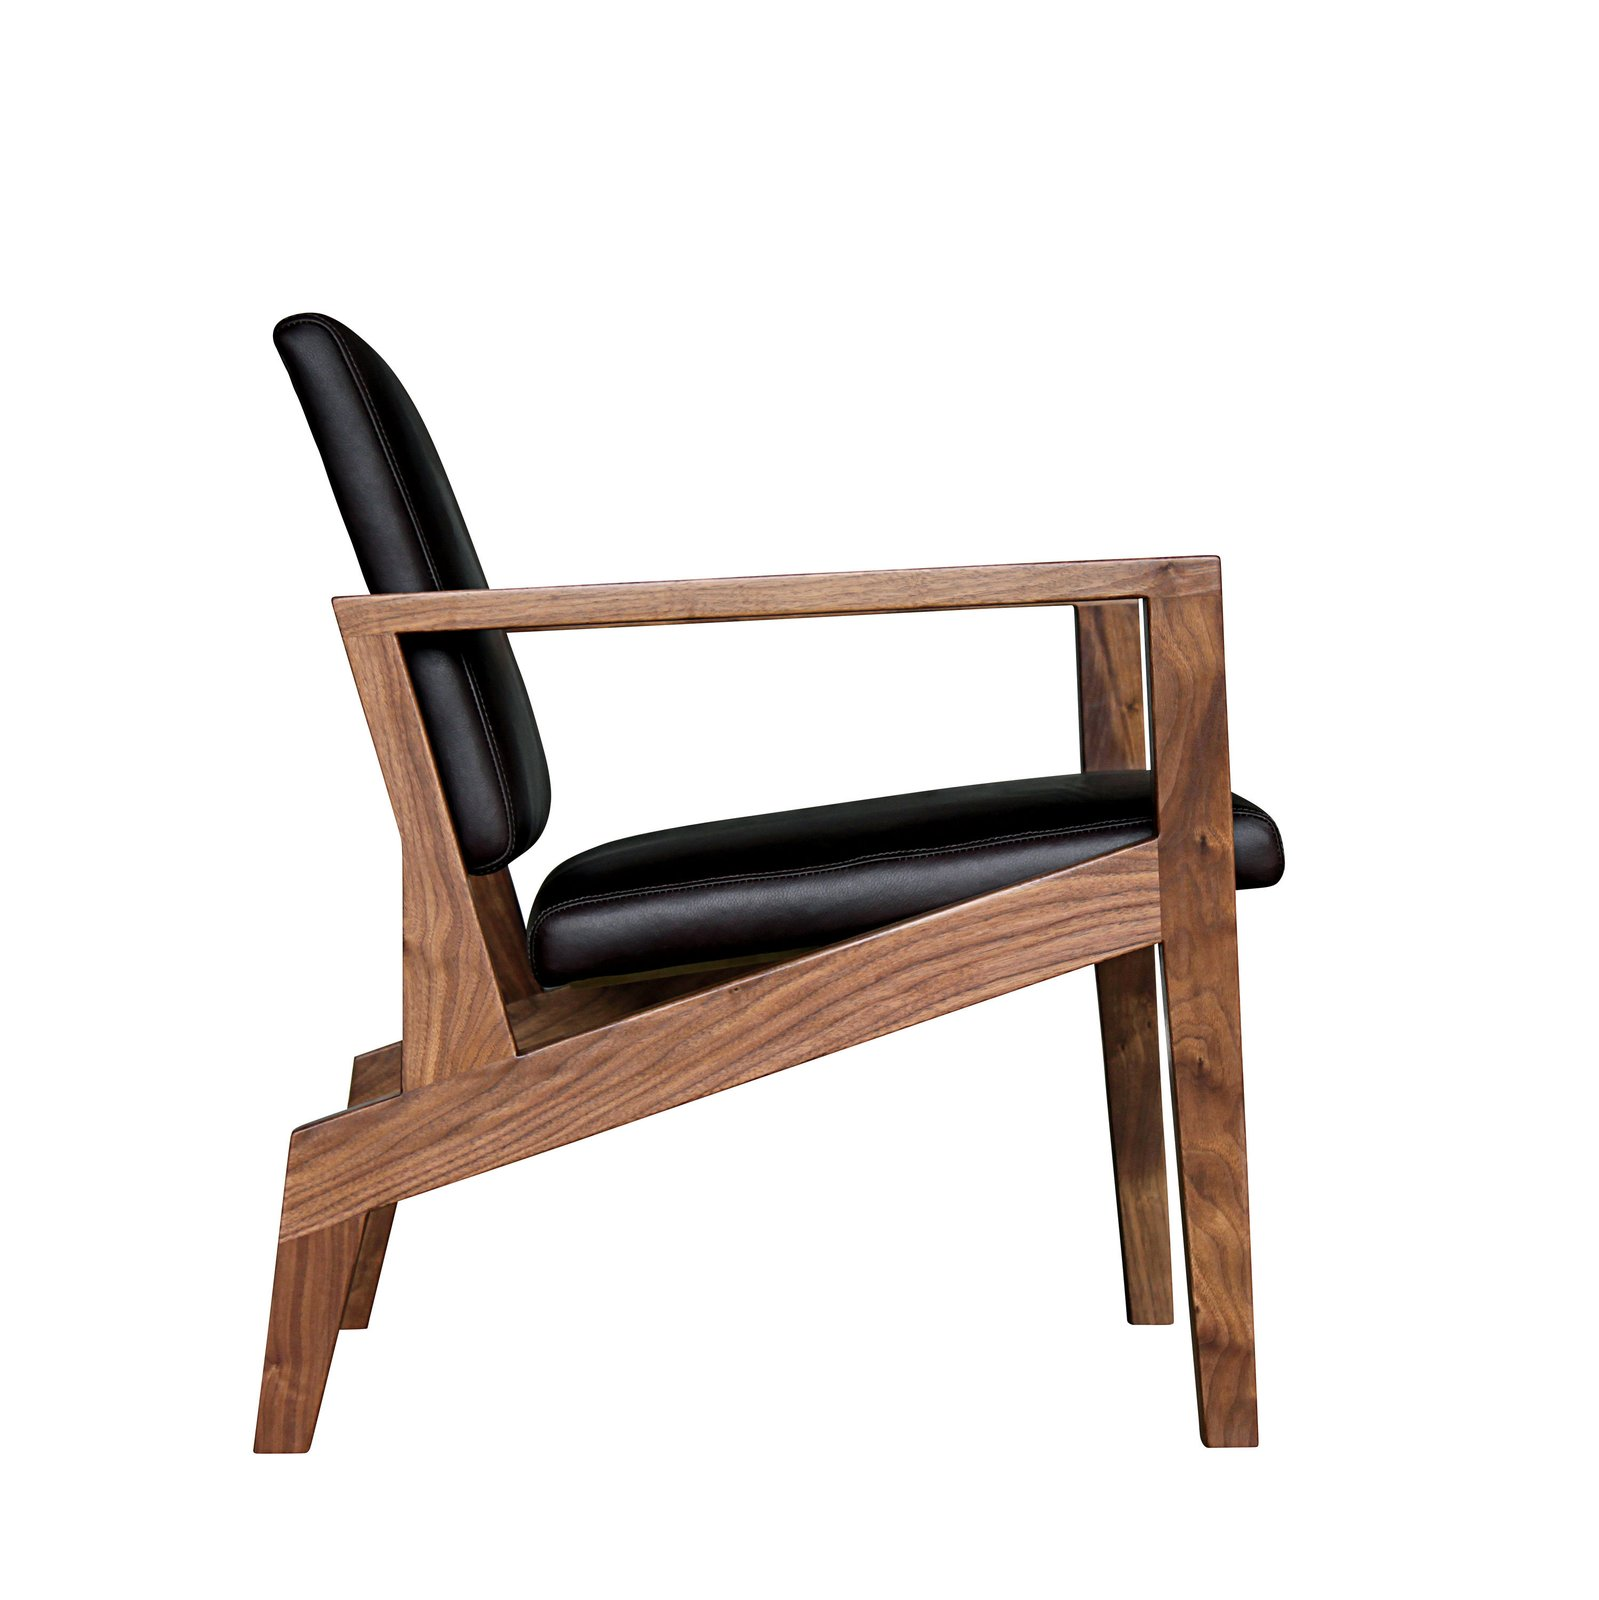 Durham, North Carolina  Maxwell Chair from Elijah Leed, $2,700. In his Bull City studio, Elijah Leed crafts handmade furniture from Appalachian wood. This lounge combines walnut and oiled leather.  Photo 9 of 9 in 9 Modern Designs That Were Born in the USA